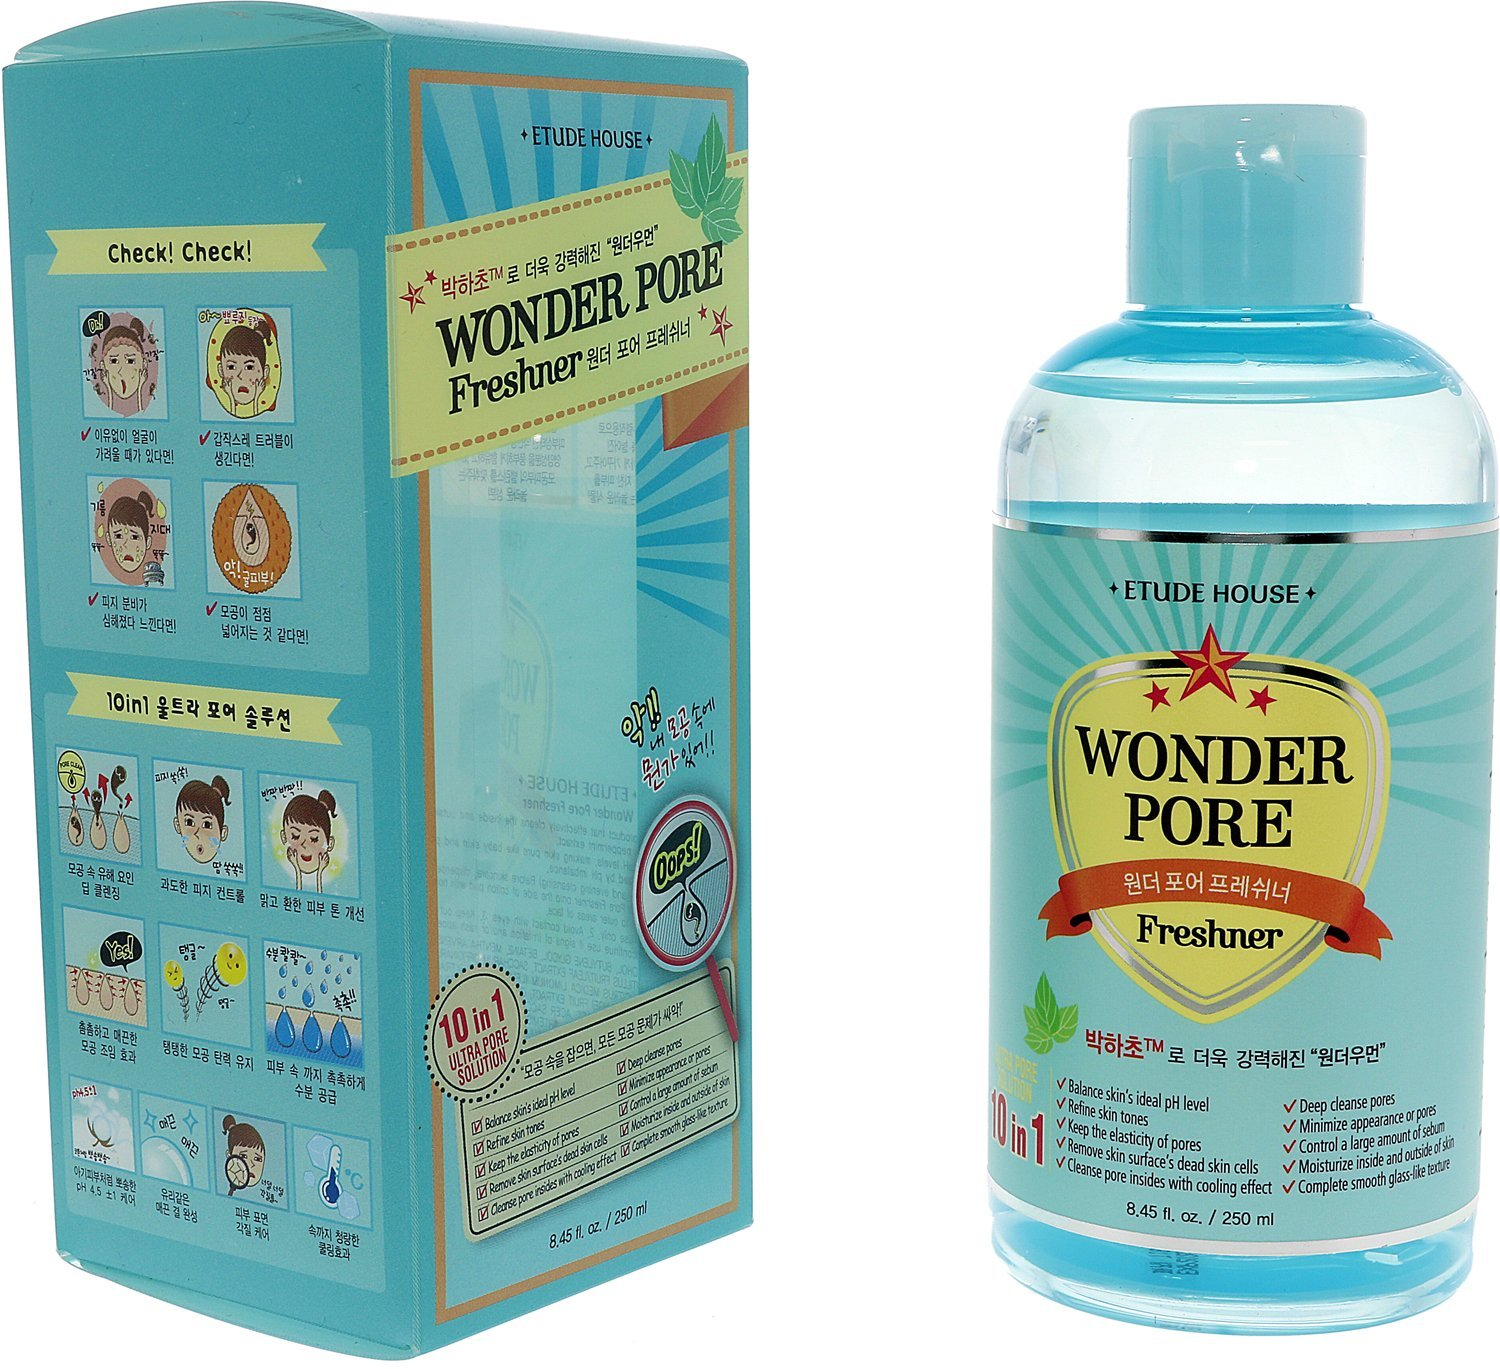 Etude House Wonder Pore Freshner 250ml/8.45oz 8806179423228